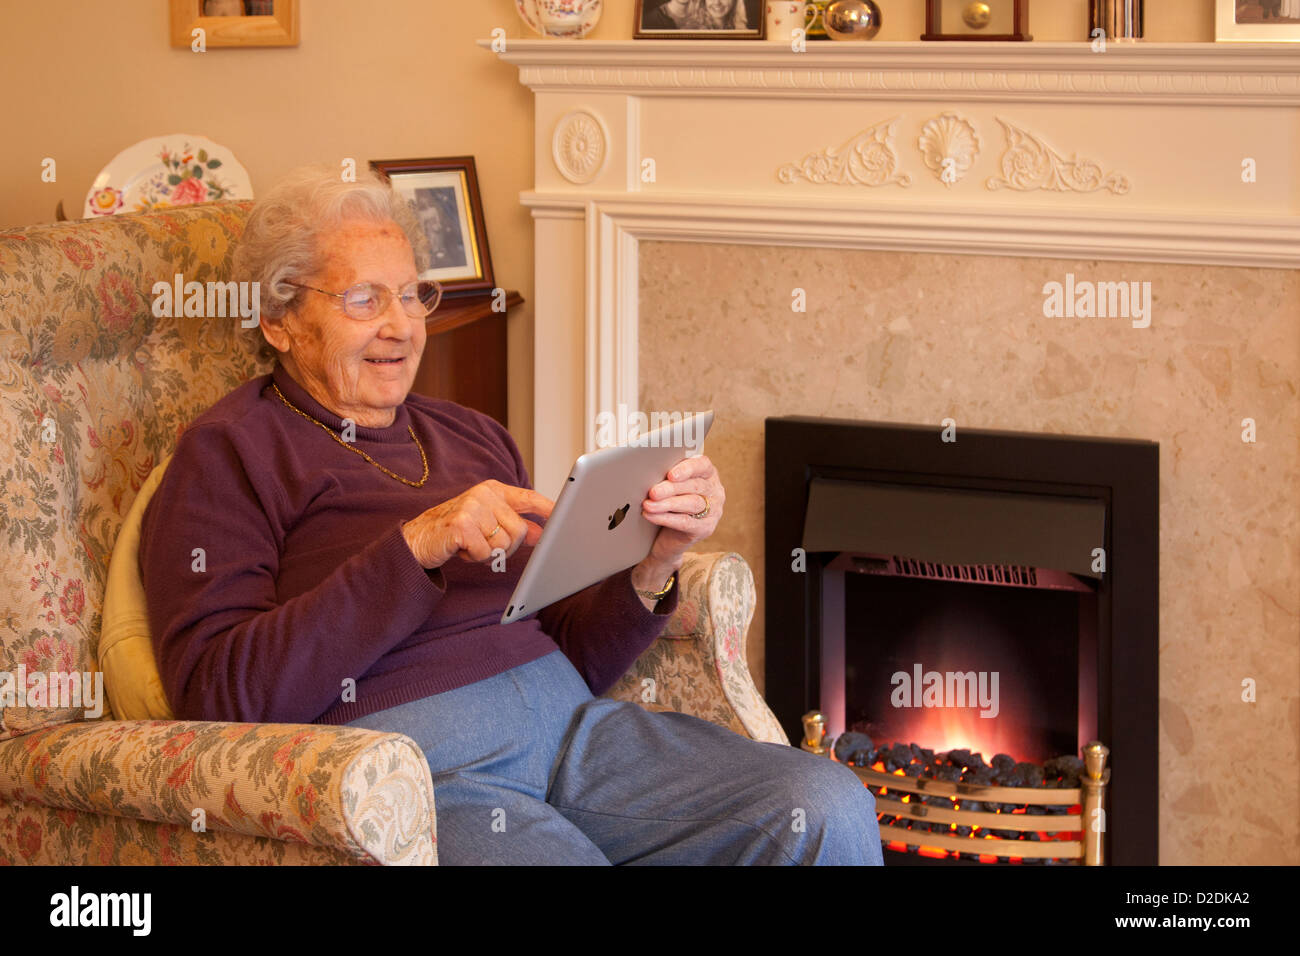 Elderly woman pensioner with glasses on apple ipad tablet at home relaxing on chair playing computer game - Stock Image